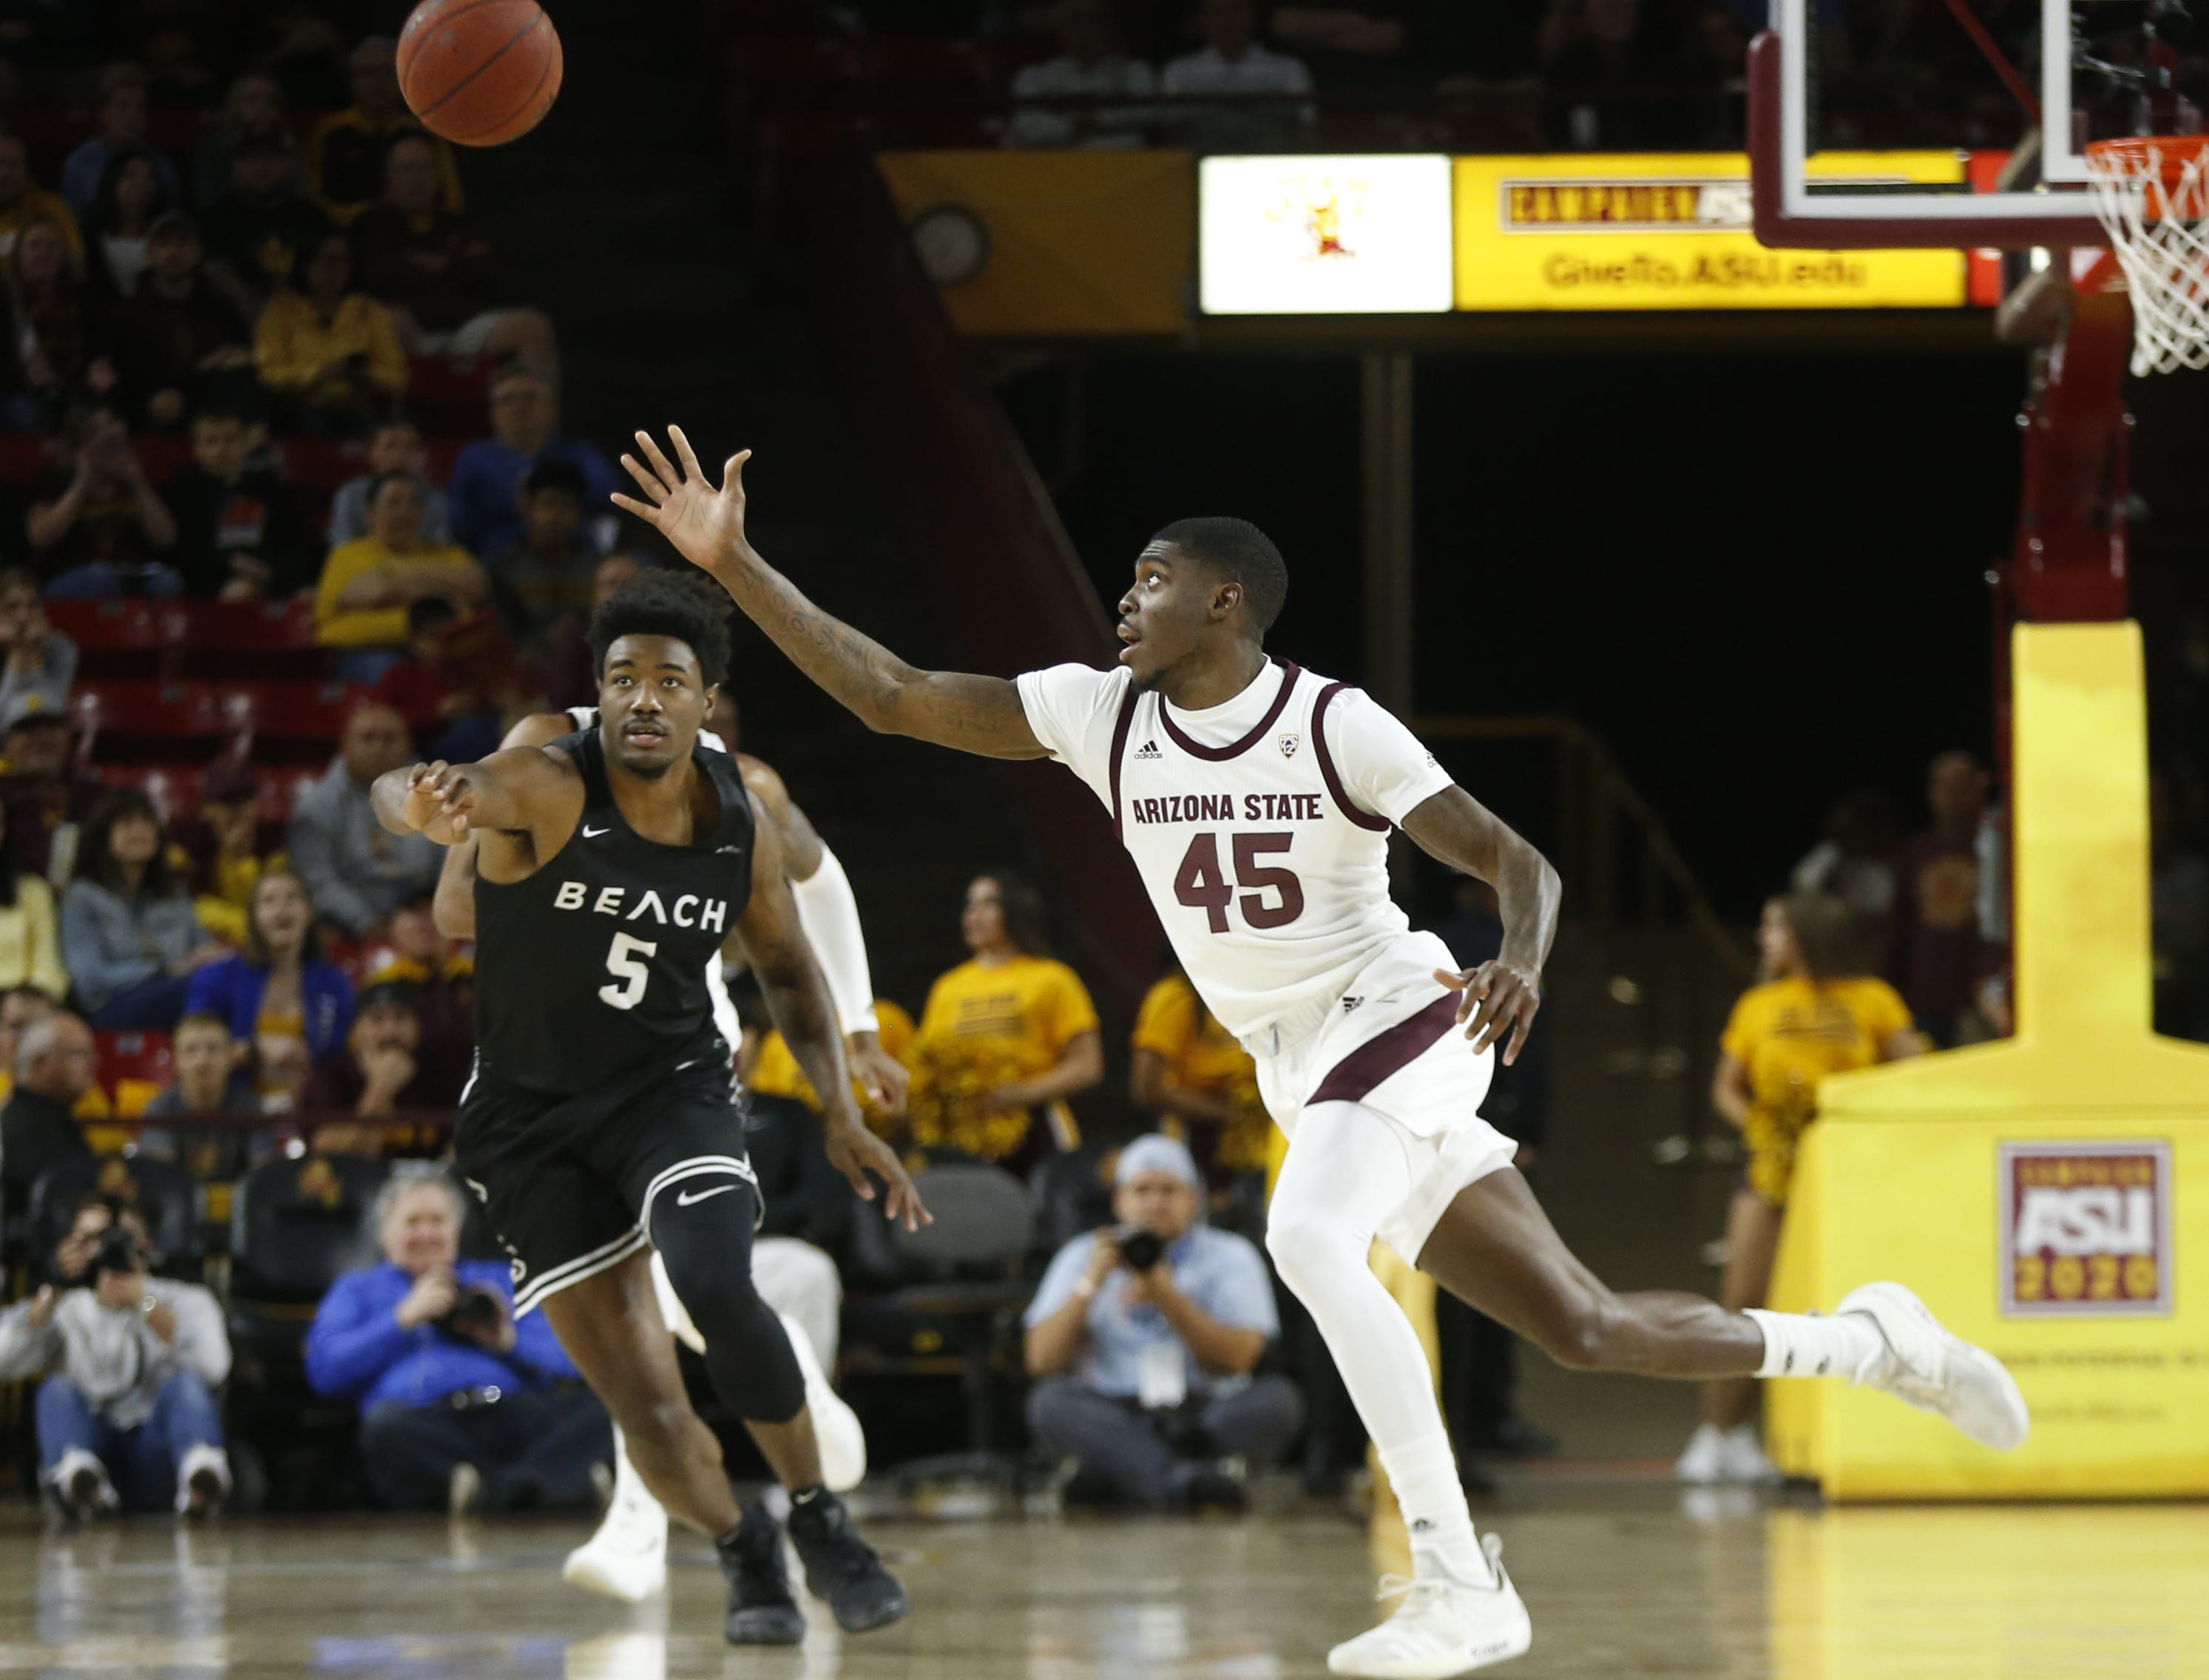 Arizona State's Zylan Cheatham (45) and Long Beach State's Mason Riggins (5) chase down a loose ball during the first half at Wells Fargo Arena in Tempe, Ariz. on November 12, 2018.